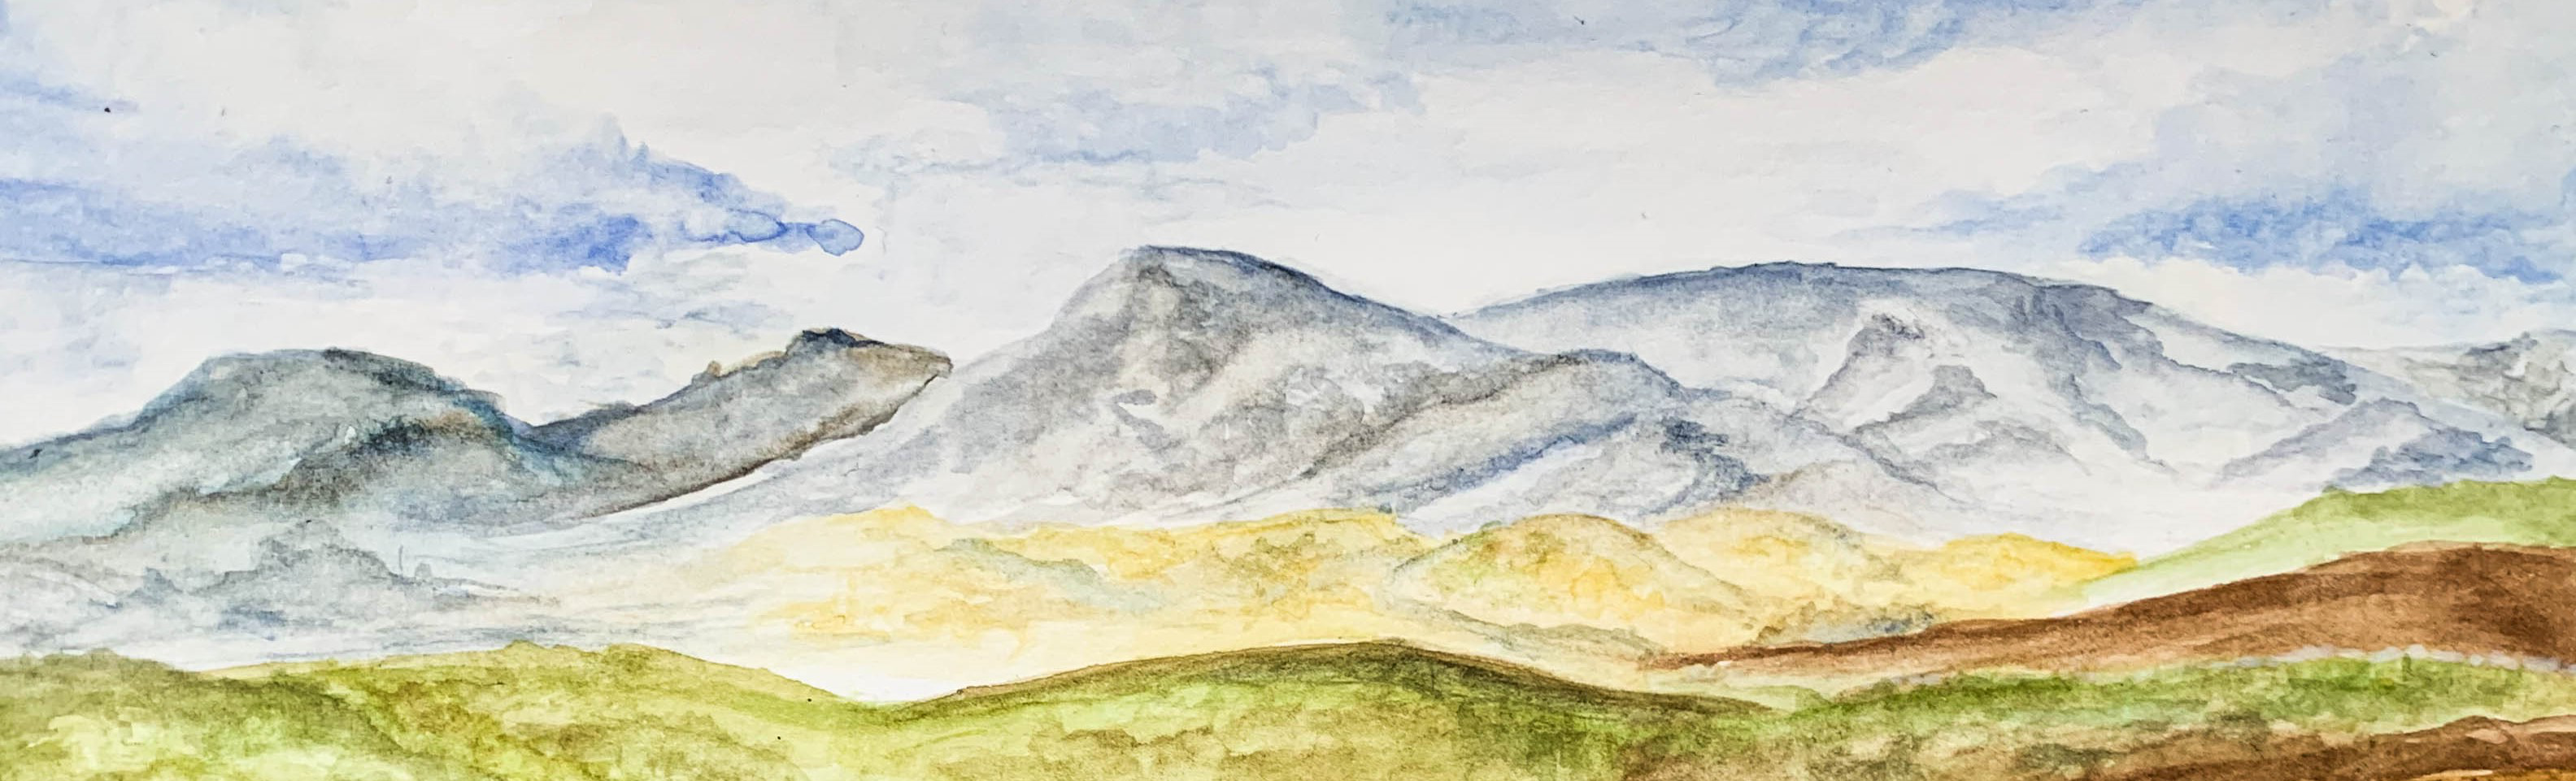 A watercolor painting of the Blue Mountains by Samarah Uribe Mendez